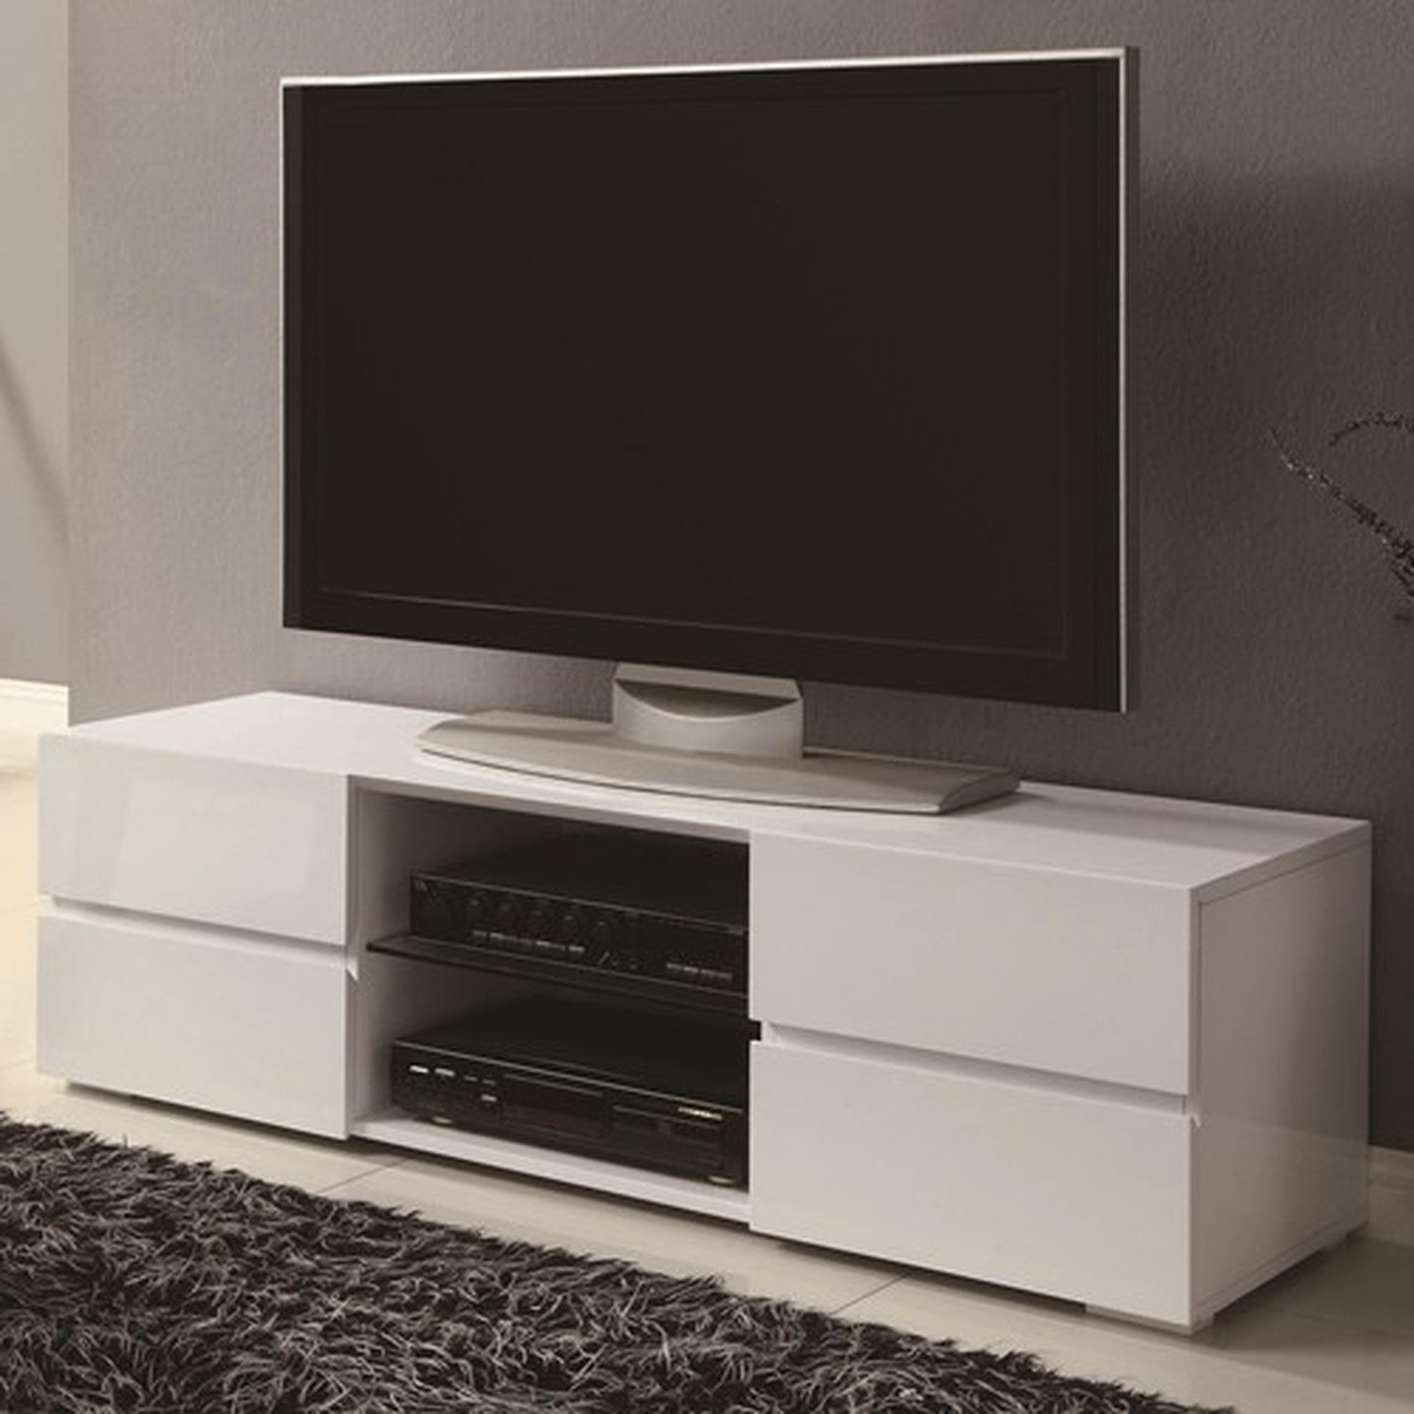 White Wood Tv Stand – Steal A Sofa Furniture Outlet Los Angeles Ca For White Tv Stands (View 15 of 15)